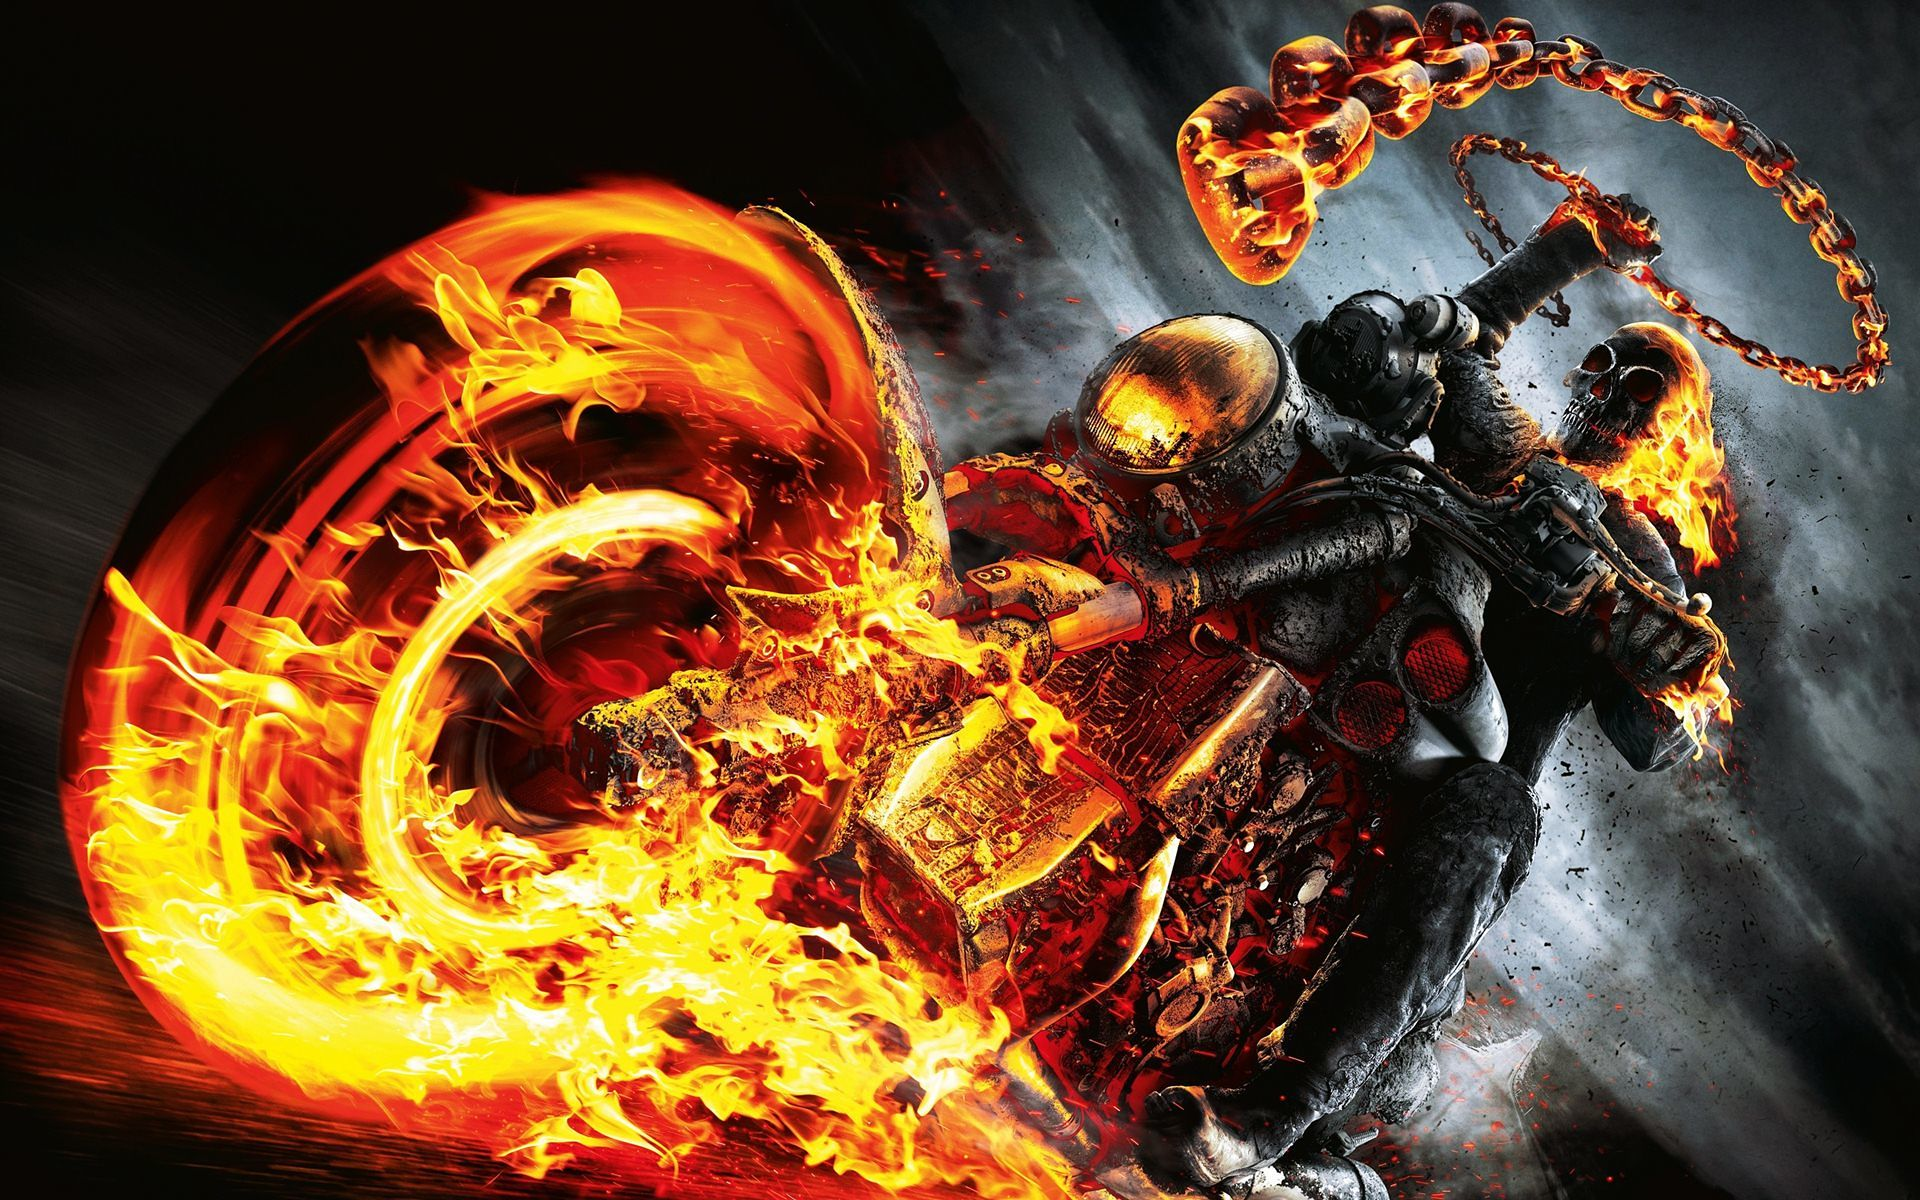 Sum 41 Wallpaper Hd Ghost Rider Wallpapers Hd Backgrounds